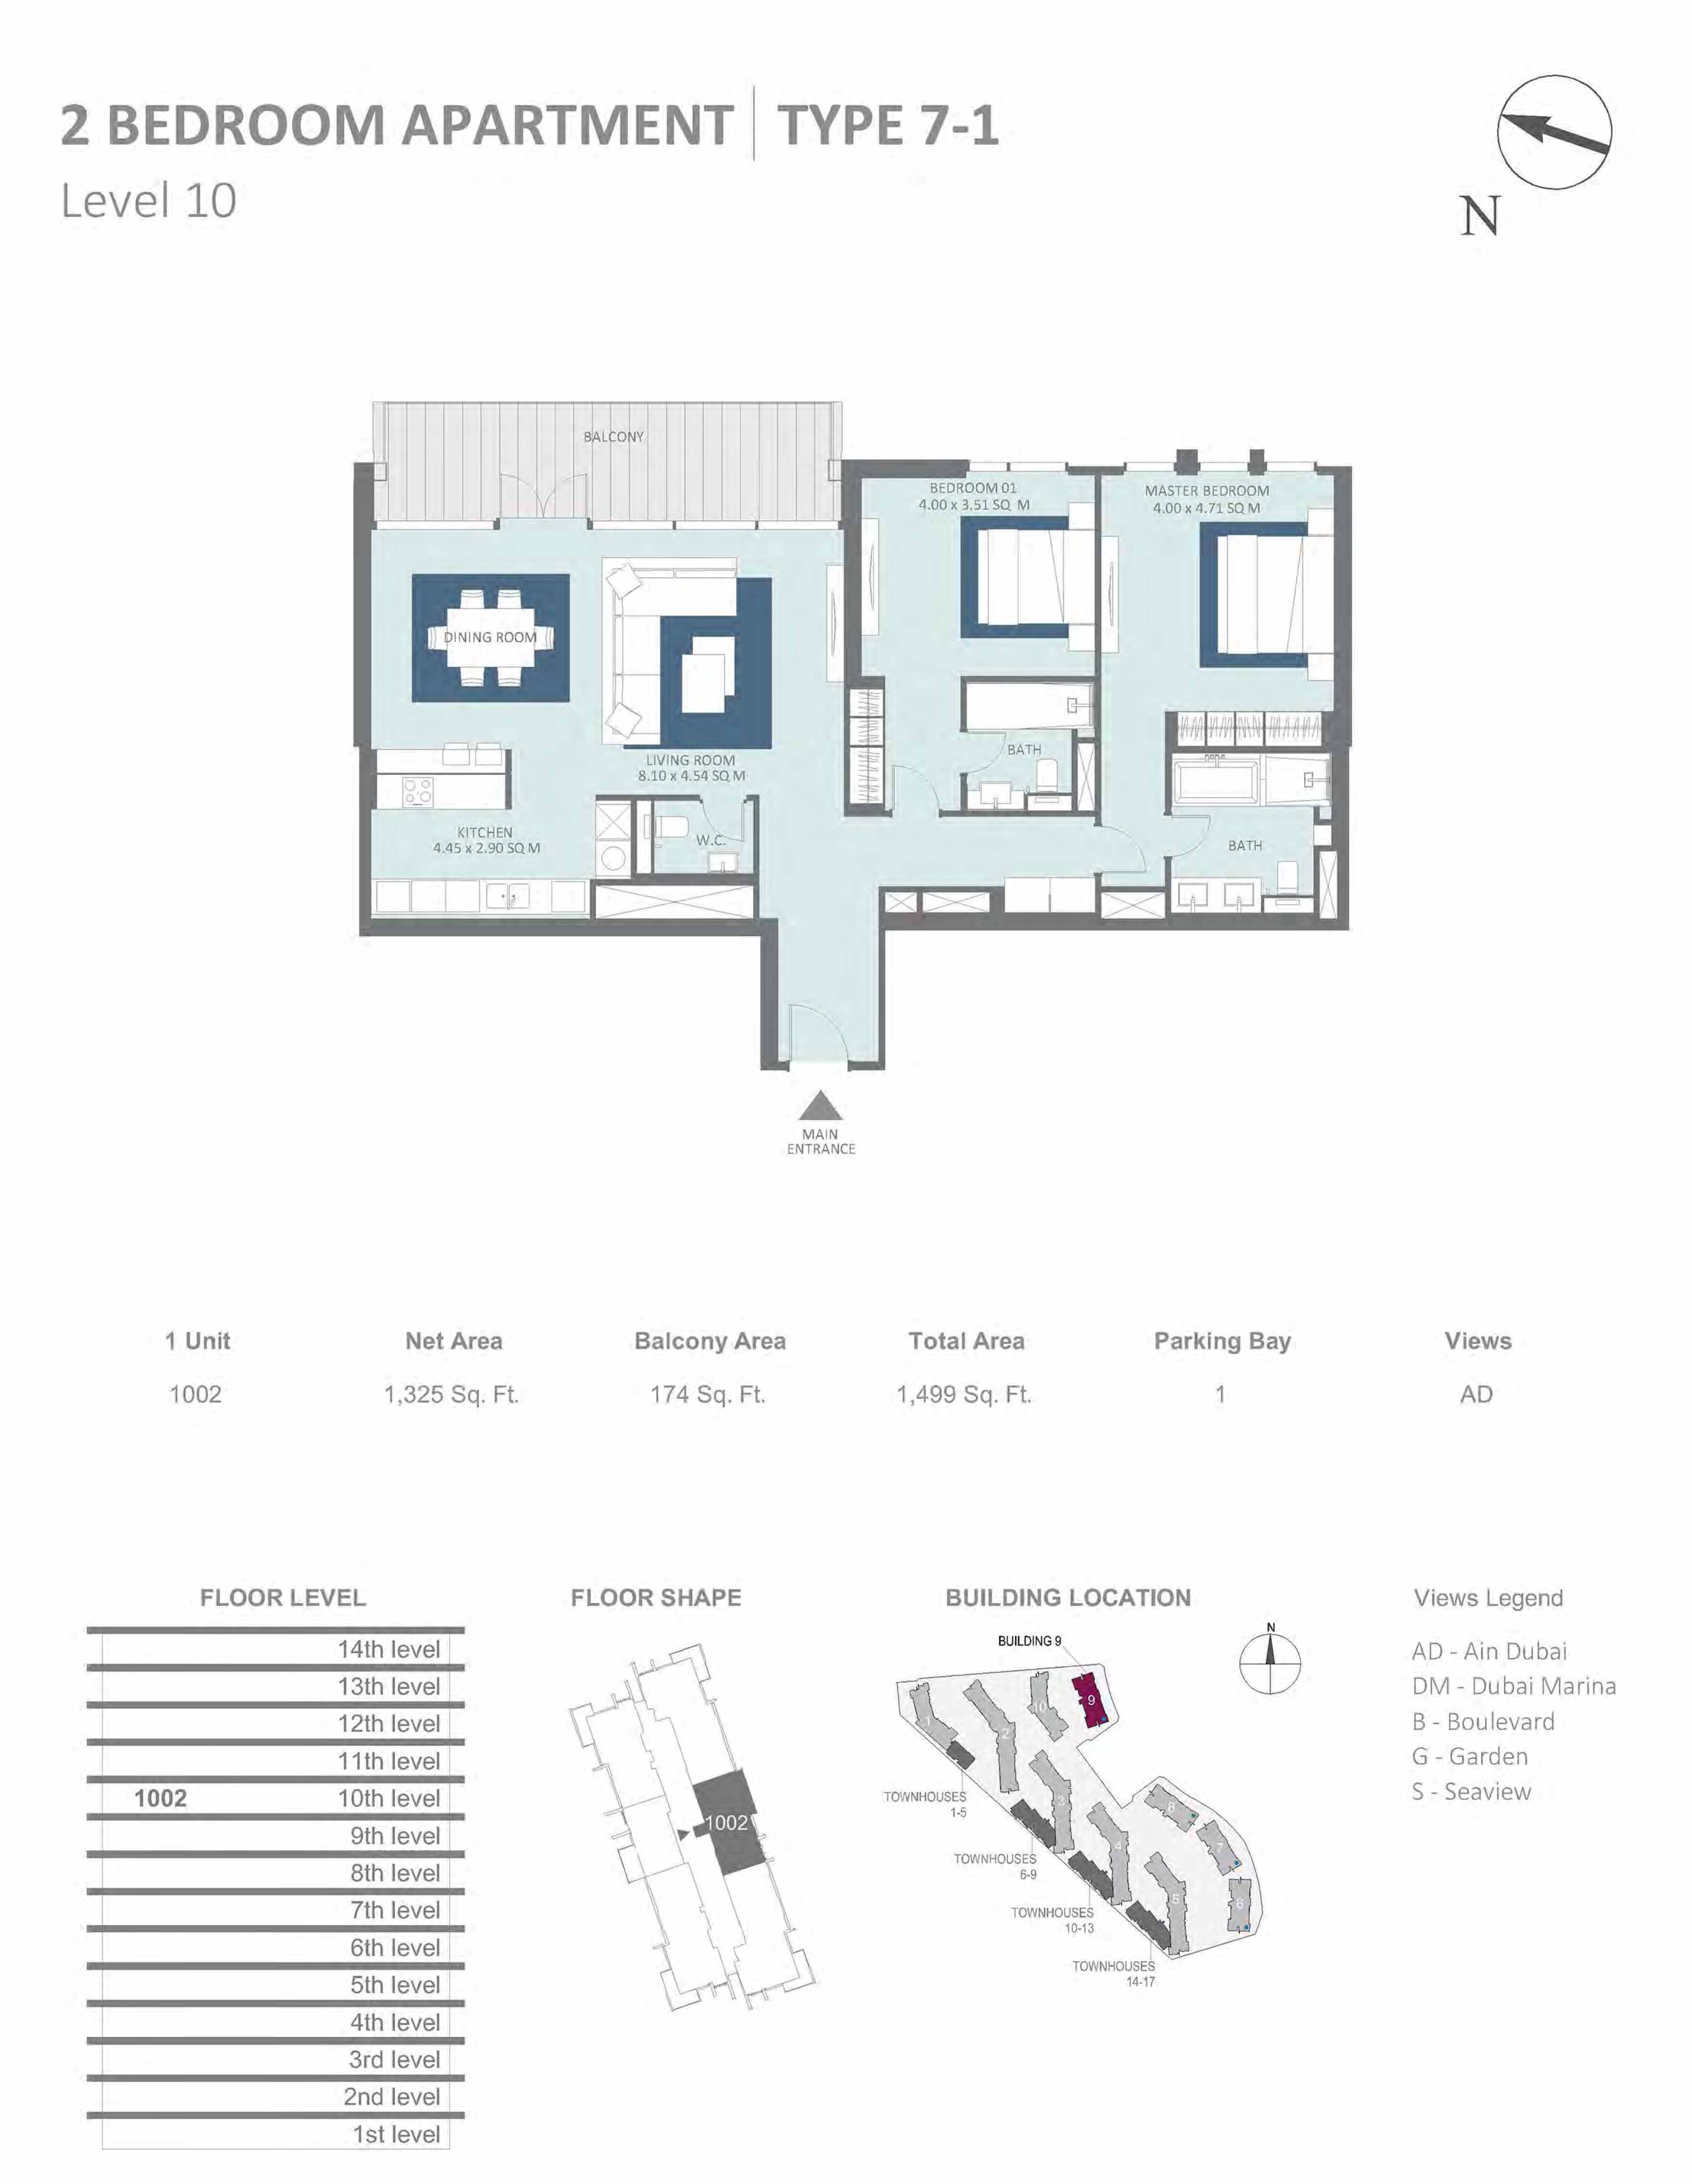 Building 9 - 2 Bedroom Type 7-1, Level 10 Size 1499 sq.ft